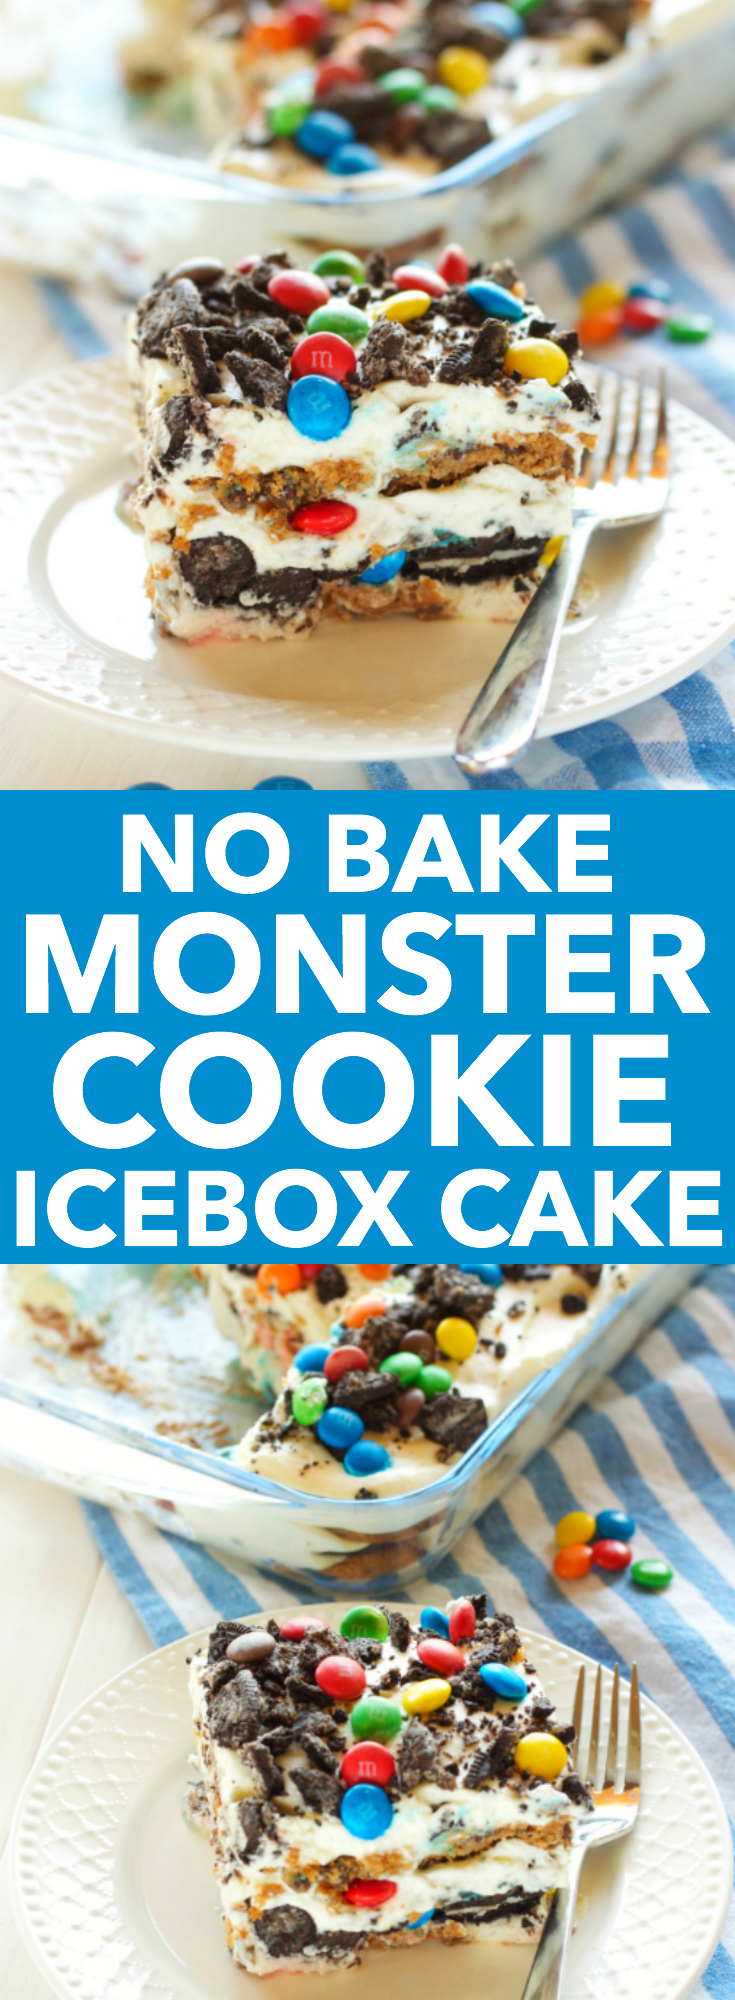 This No Bake Monster Cookie Icebox Cake is easy to make and kid-friendly, featuring cookies, candy coated chocolate, and a sweet, creamy filling! Recipe from thebusybaker.ca!